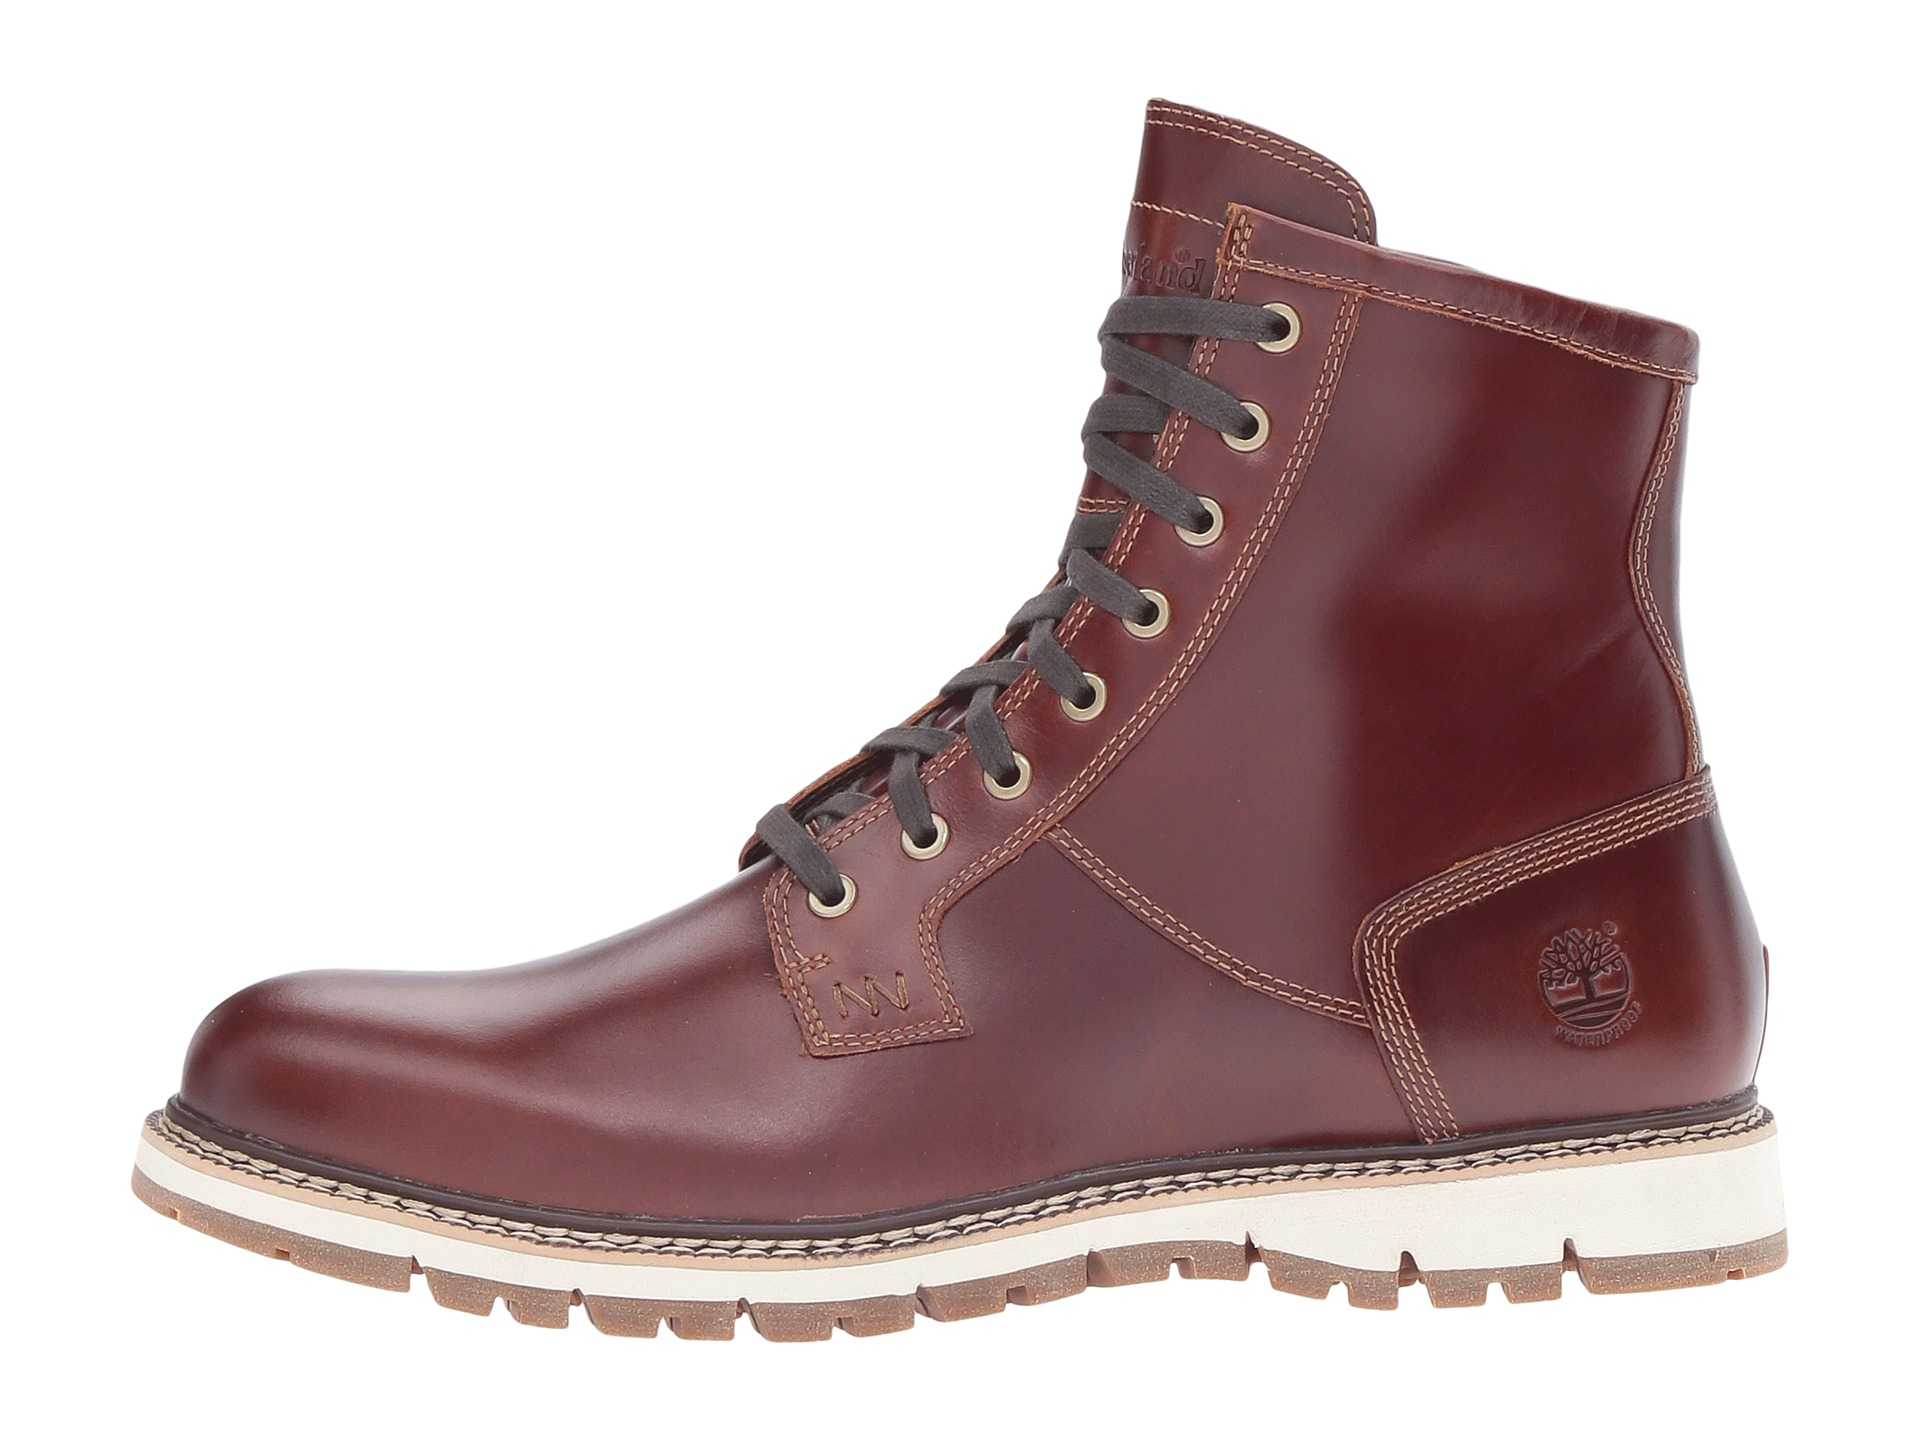 timberland britton hill waterproof plain toe boot zappos. Black Bedroom Furniture Sets. Home Design Ideas